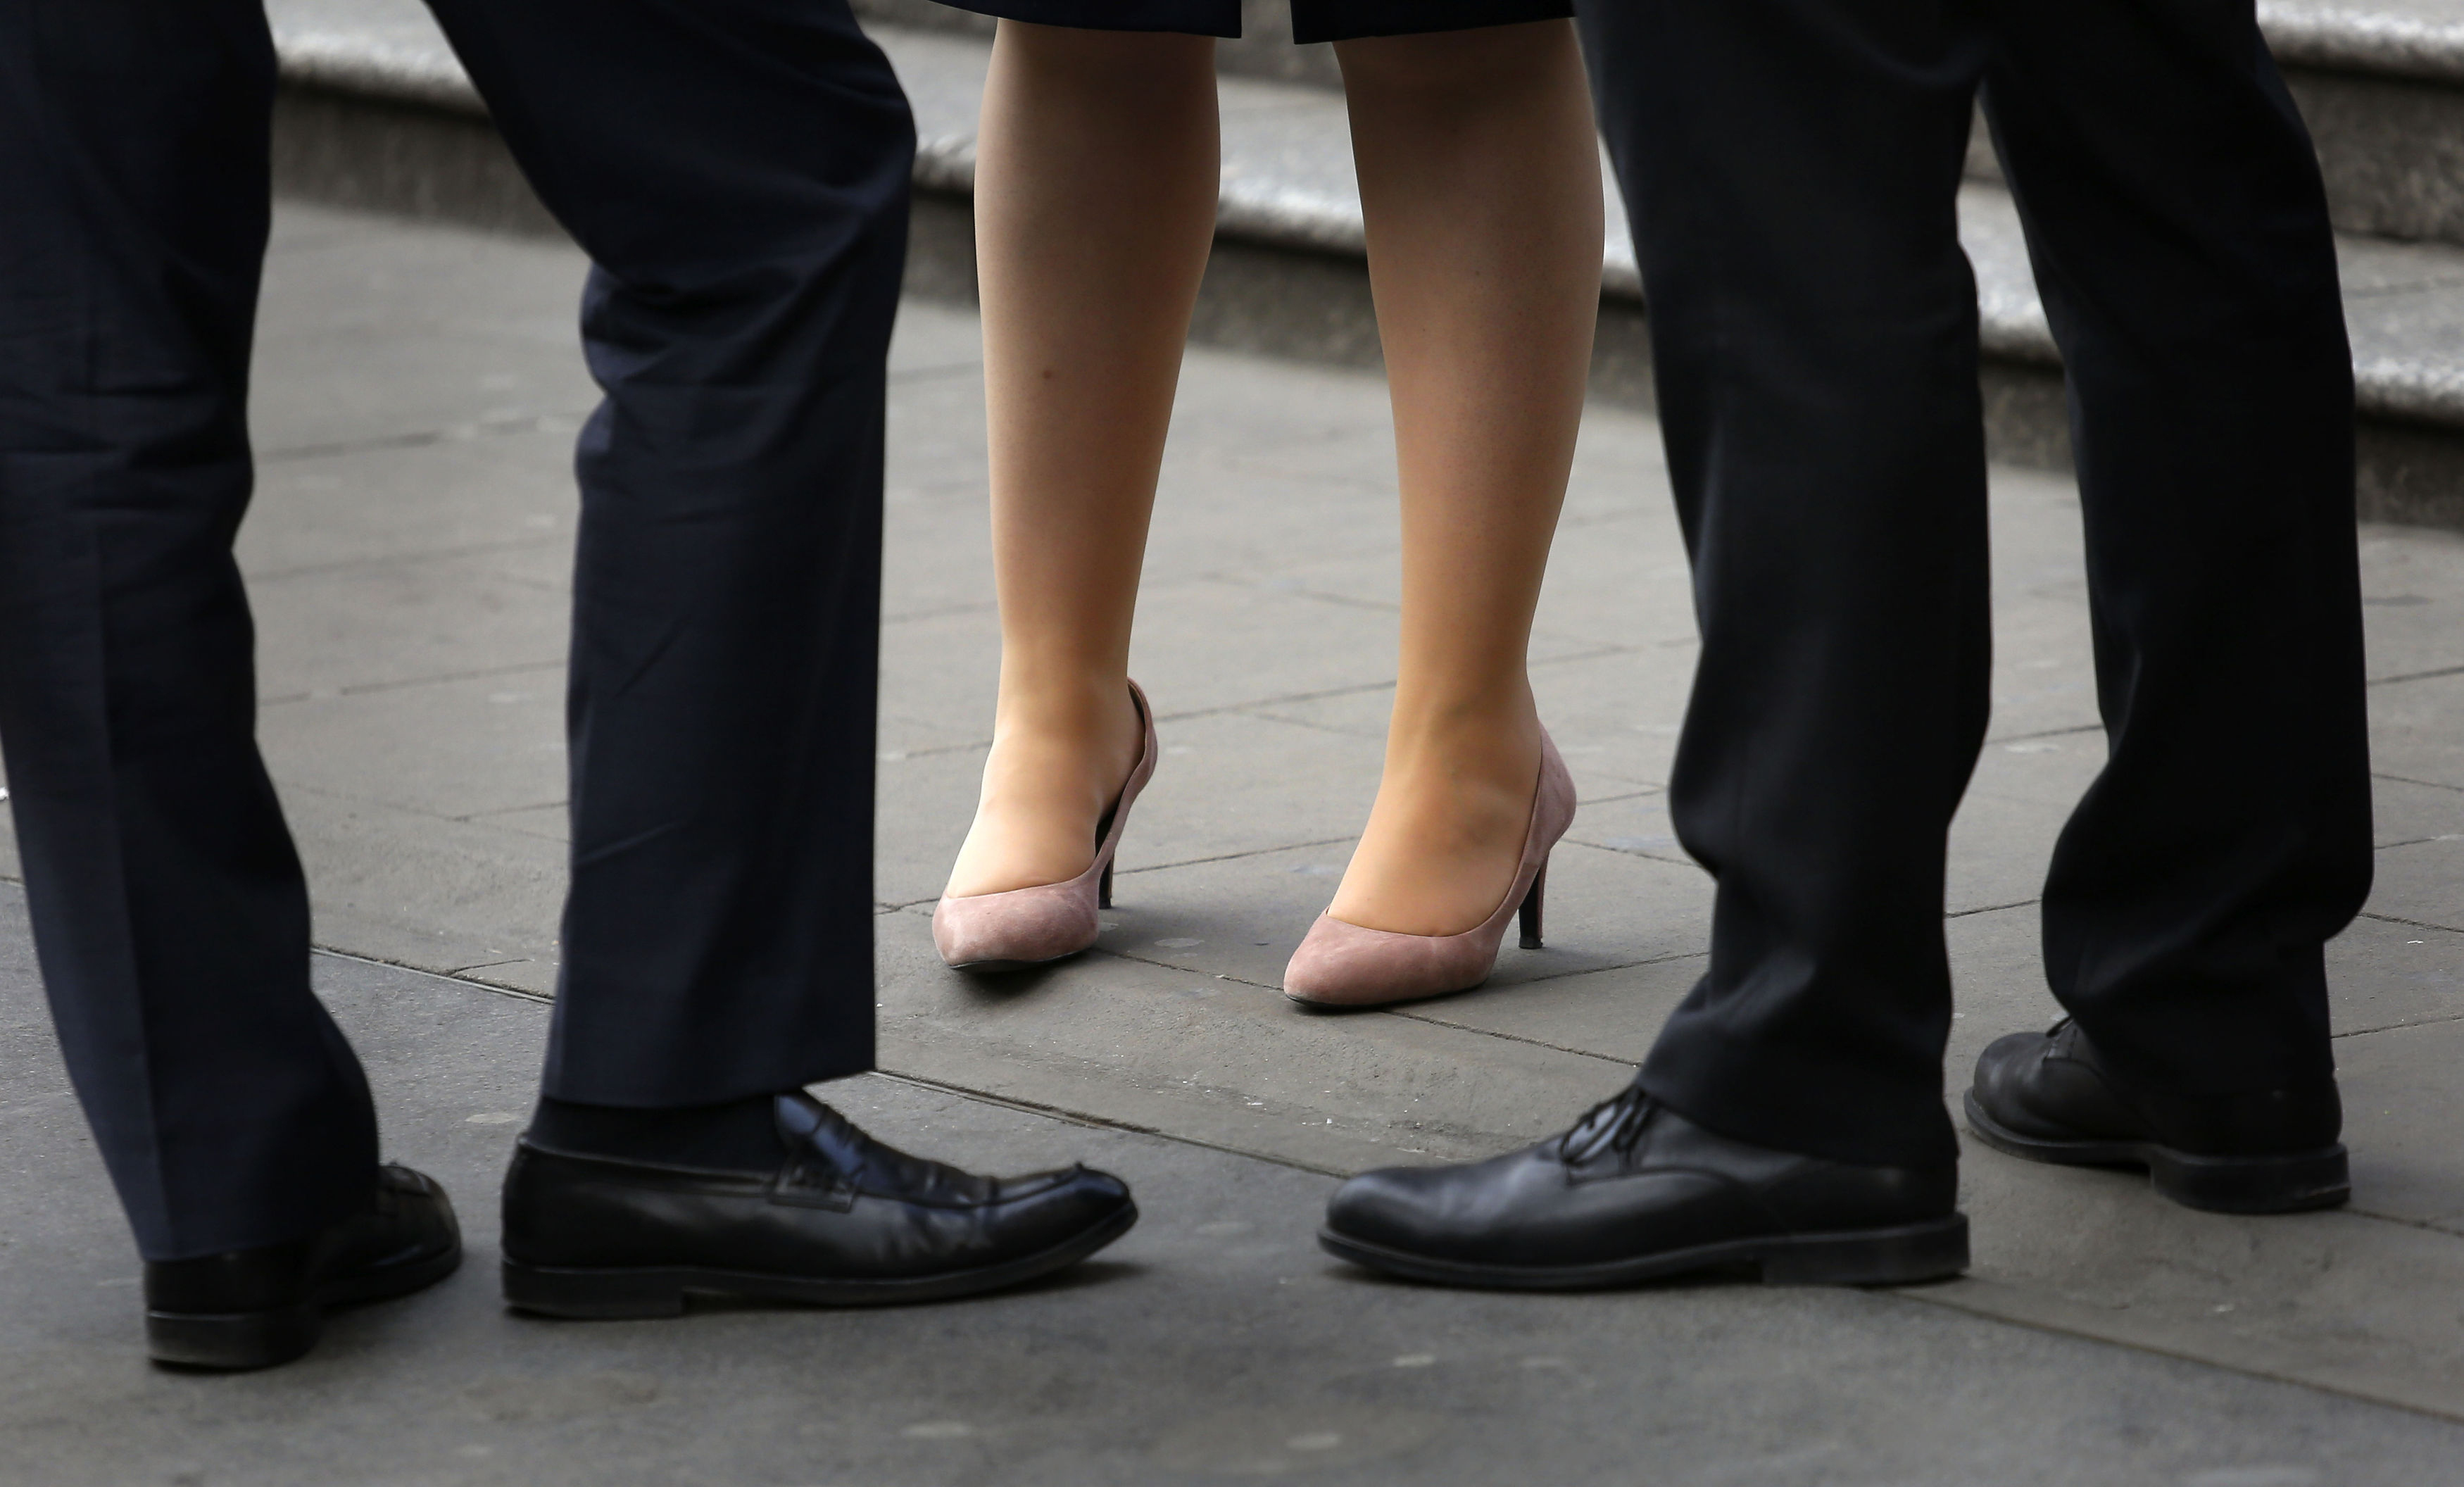 One in 12 UK workers are missing out amid unrealistic workloads, and employers deliberately denying holiday requests or not keeping up to date with the law. (Philip Toscano/PA Wire)